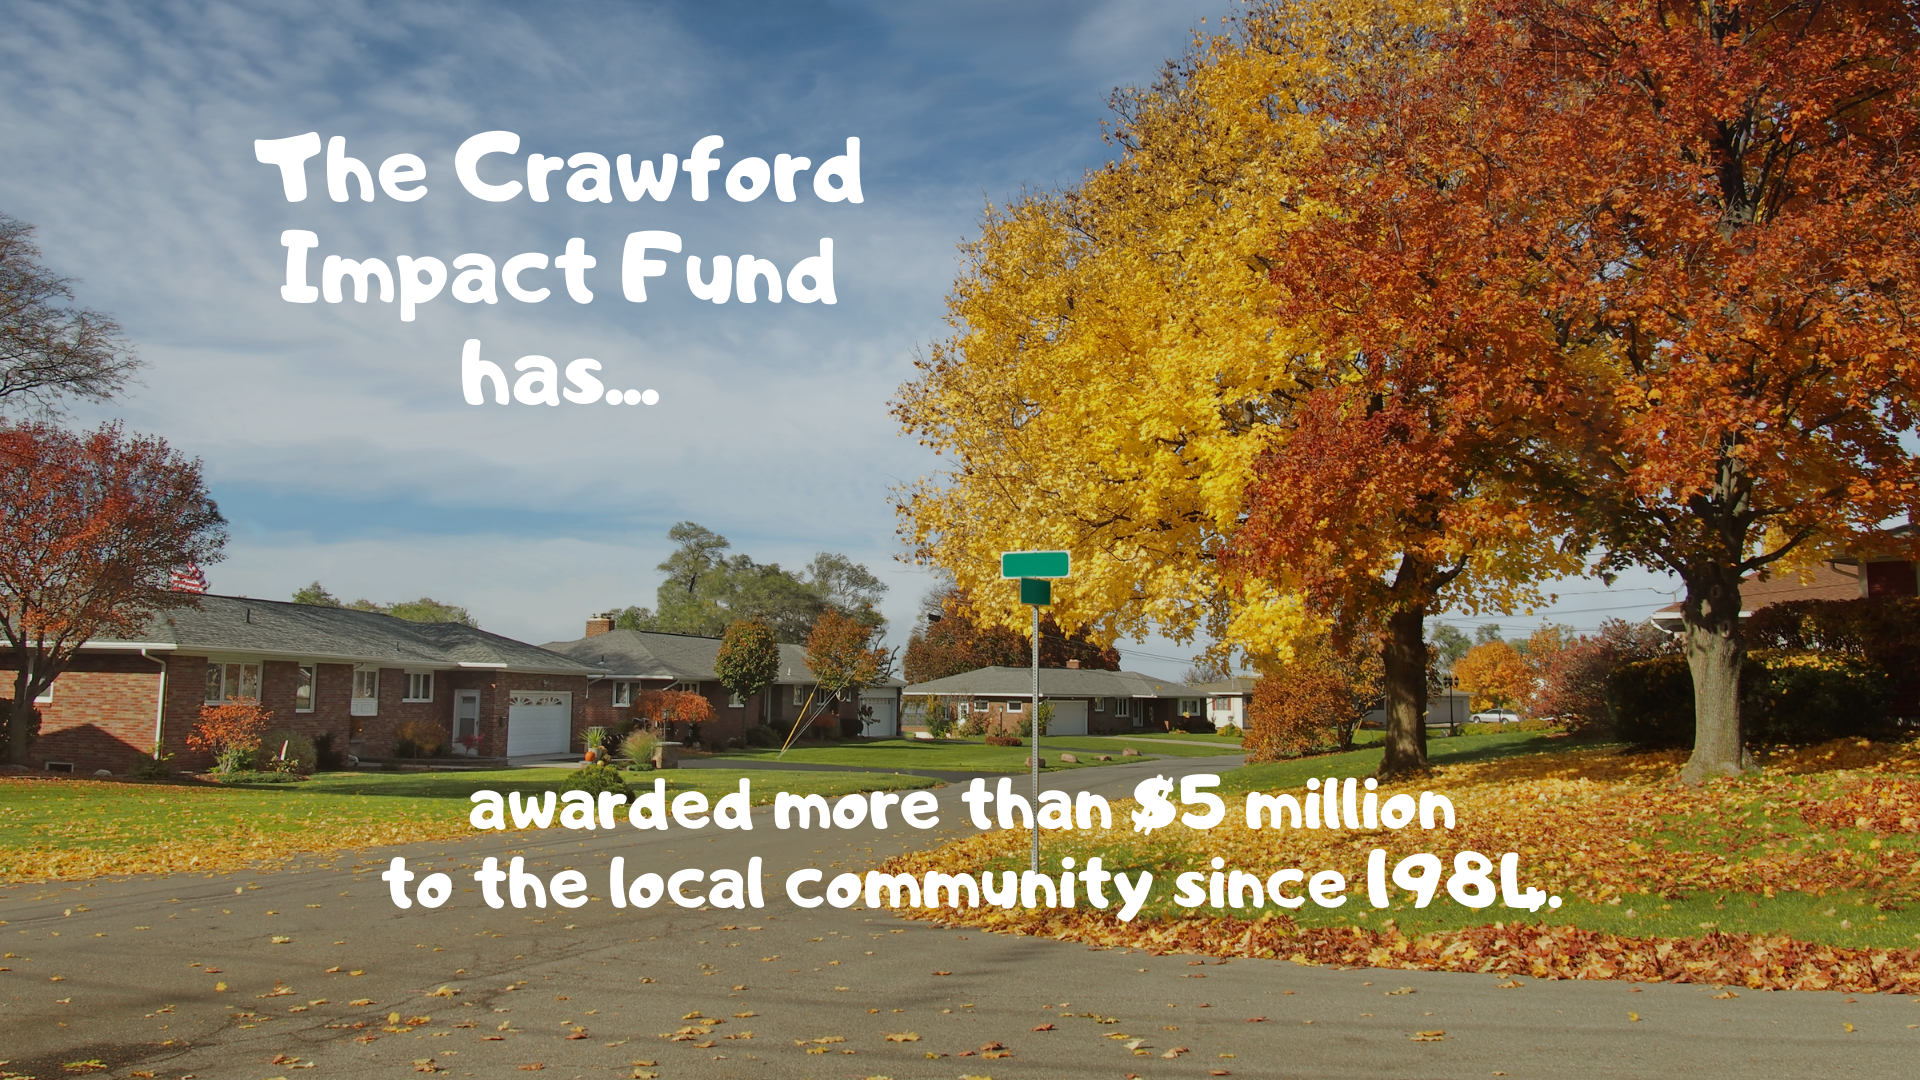 2020 #Giving2sday and the Crawford Impact Fund Facebook Ad